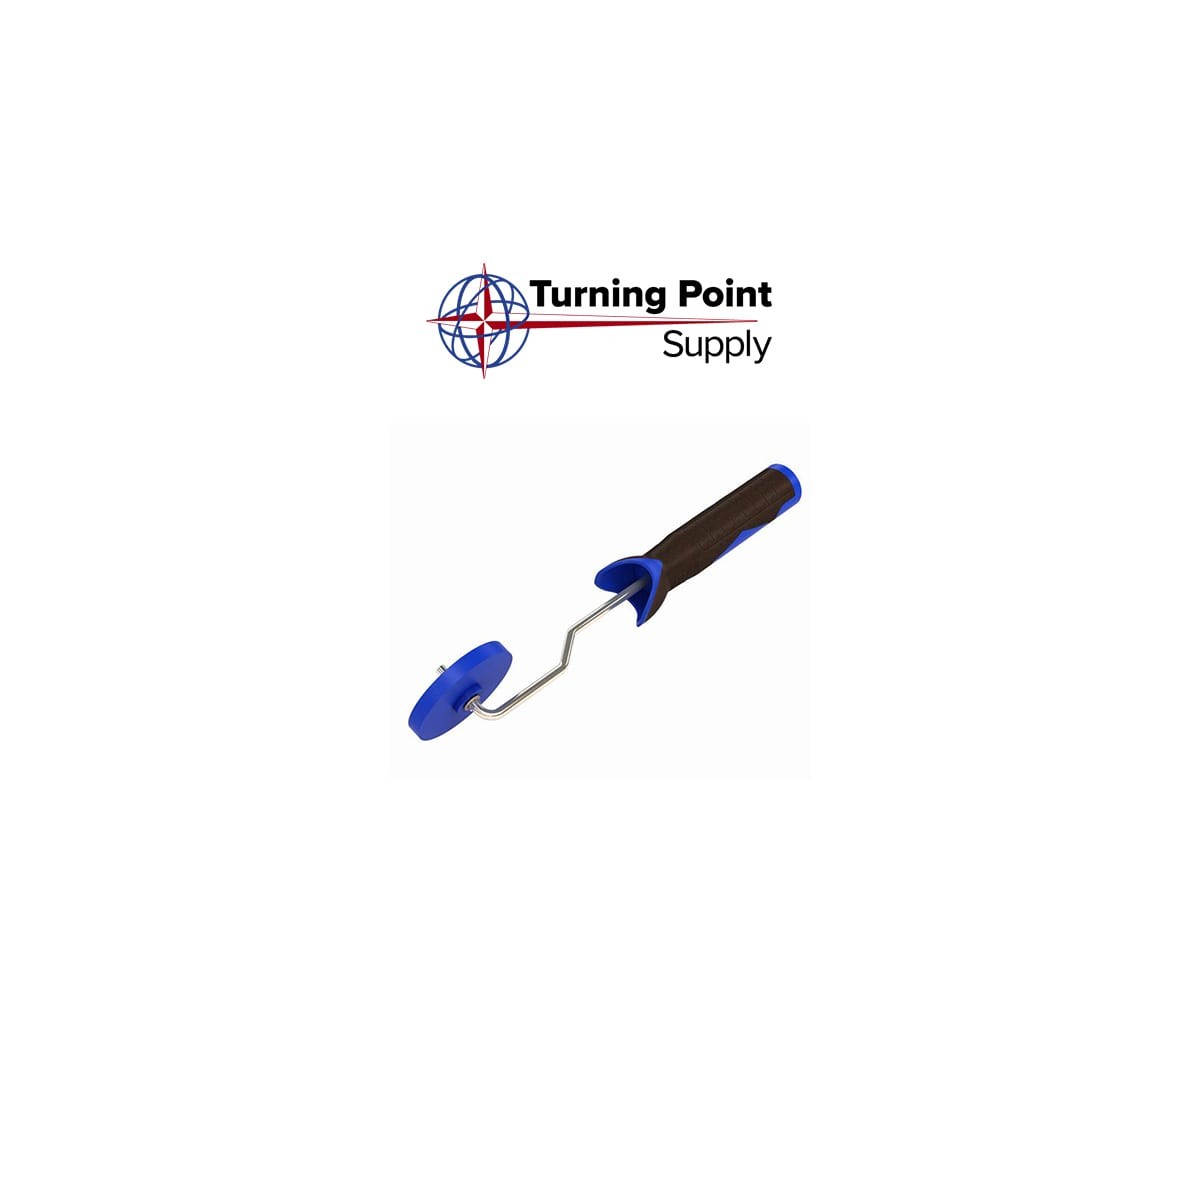 """TOUCH-UP JOINT WHEEL - SANDED RAKED 3/8"""" by Bon Tools 32-278"""